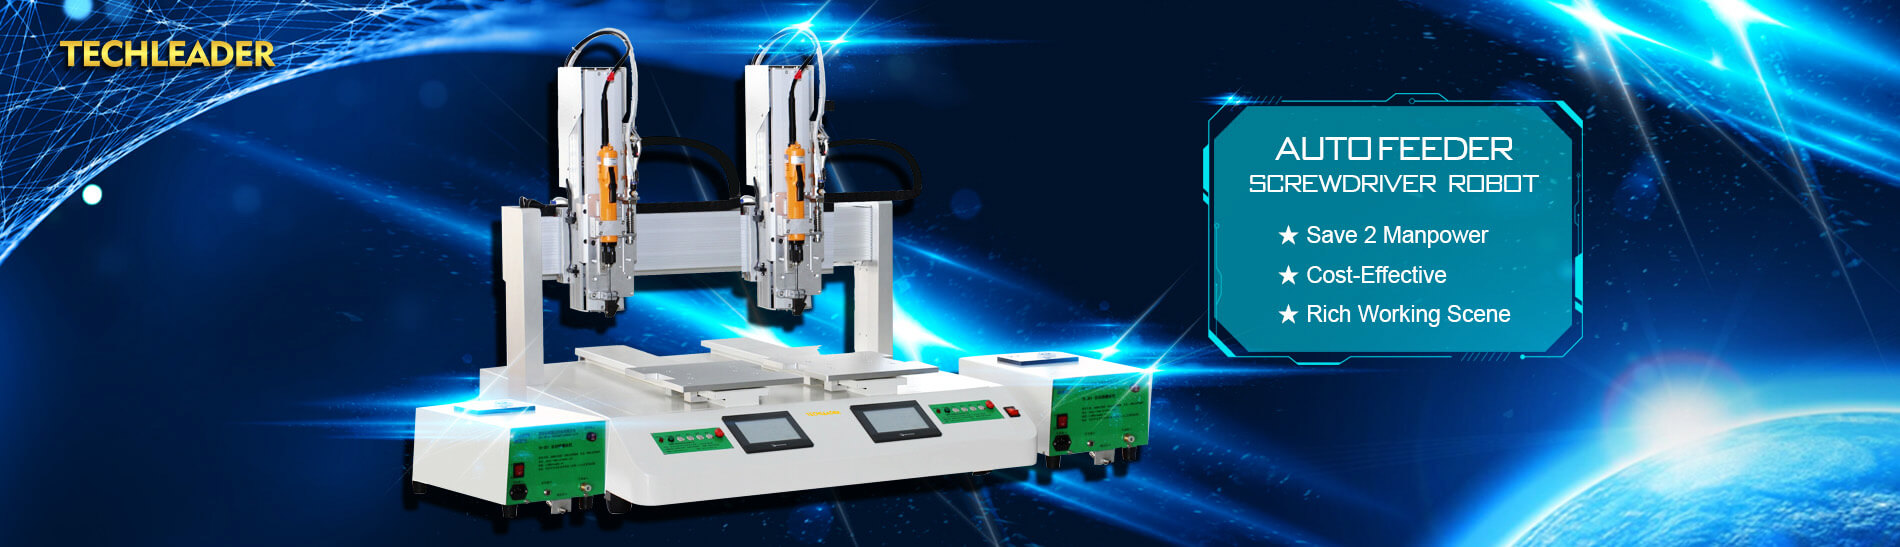 Huizhou Shengyang Industrial Co., Ltd Presents Automatic Screw Machines That Can Be Used In Today's Production Systems On The Assembly Line